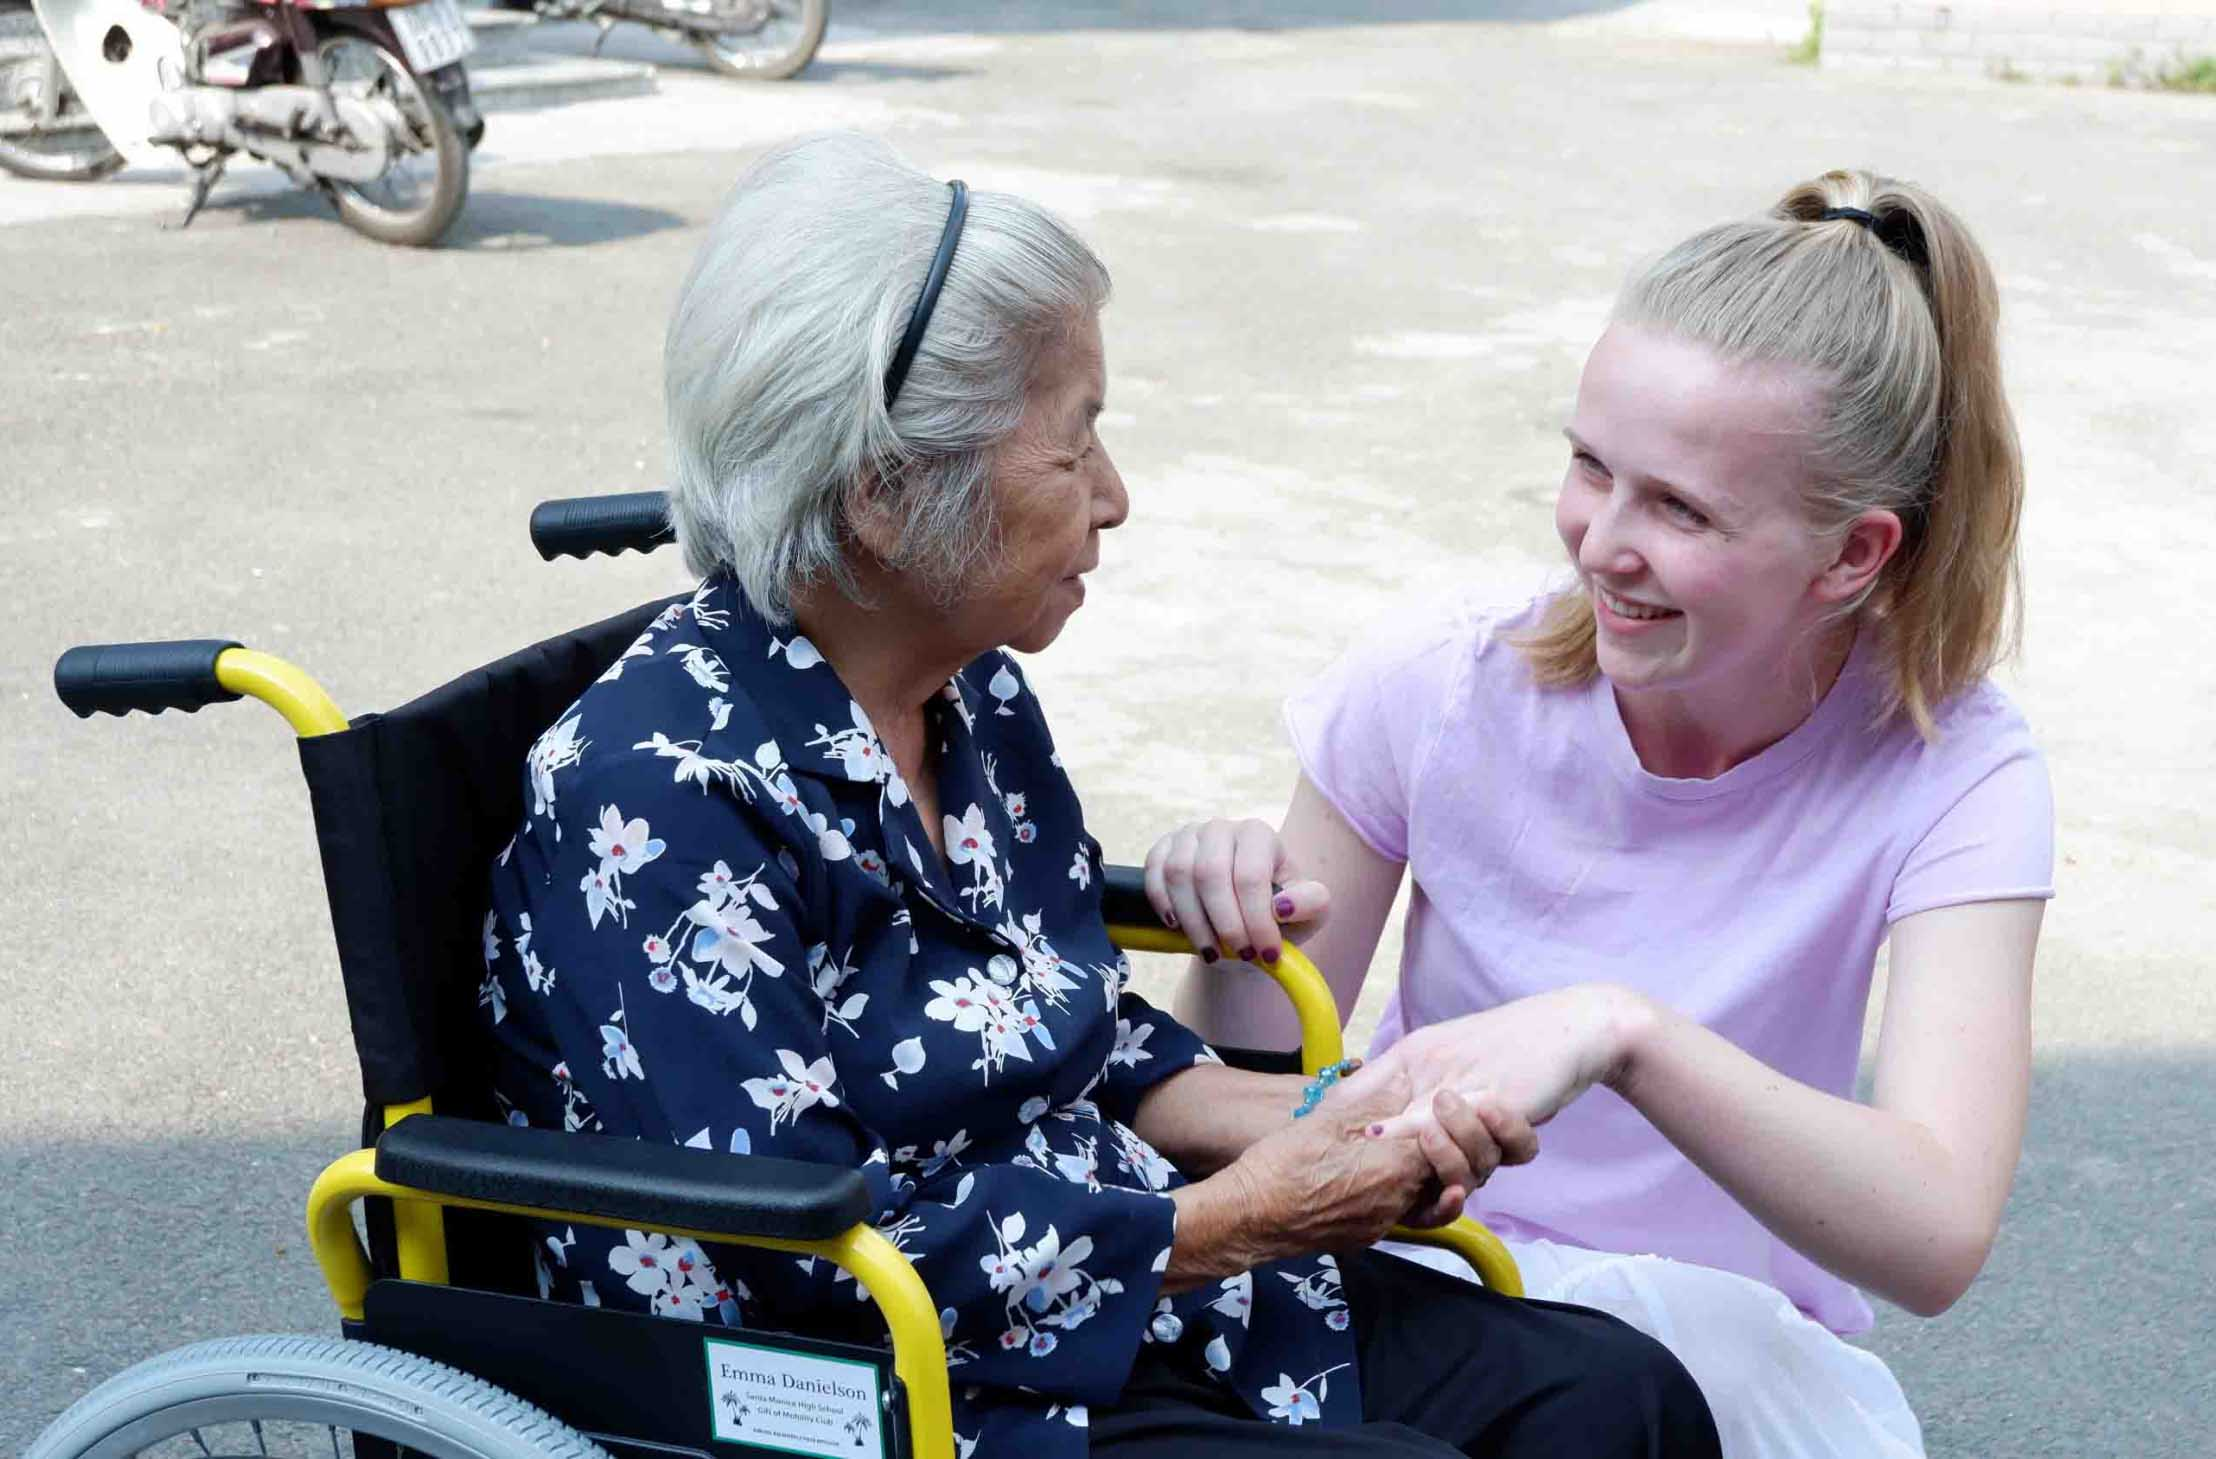 CARITAS-VIETNAM: TO DISTRIBUTE THE WHEELCHAIRS WITH LOVE